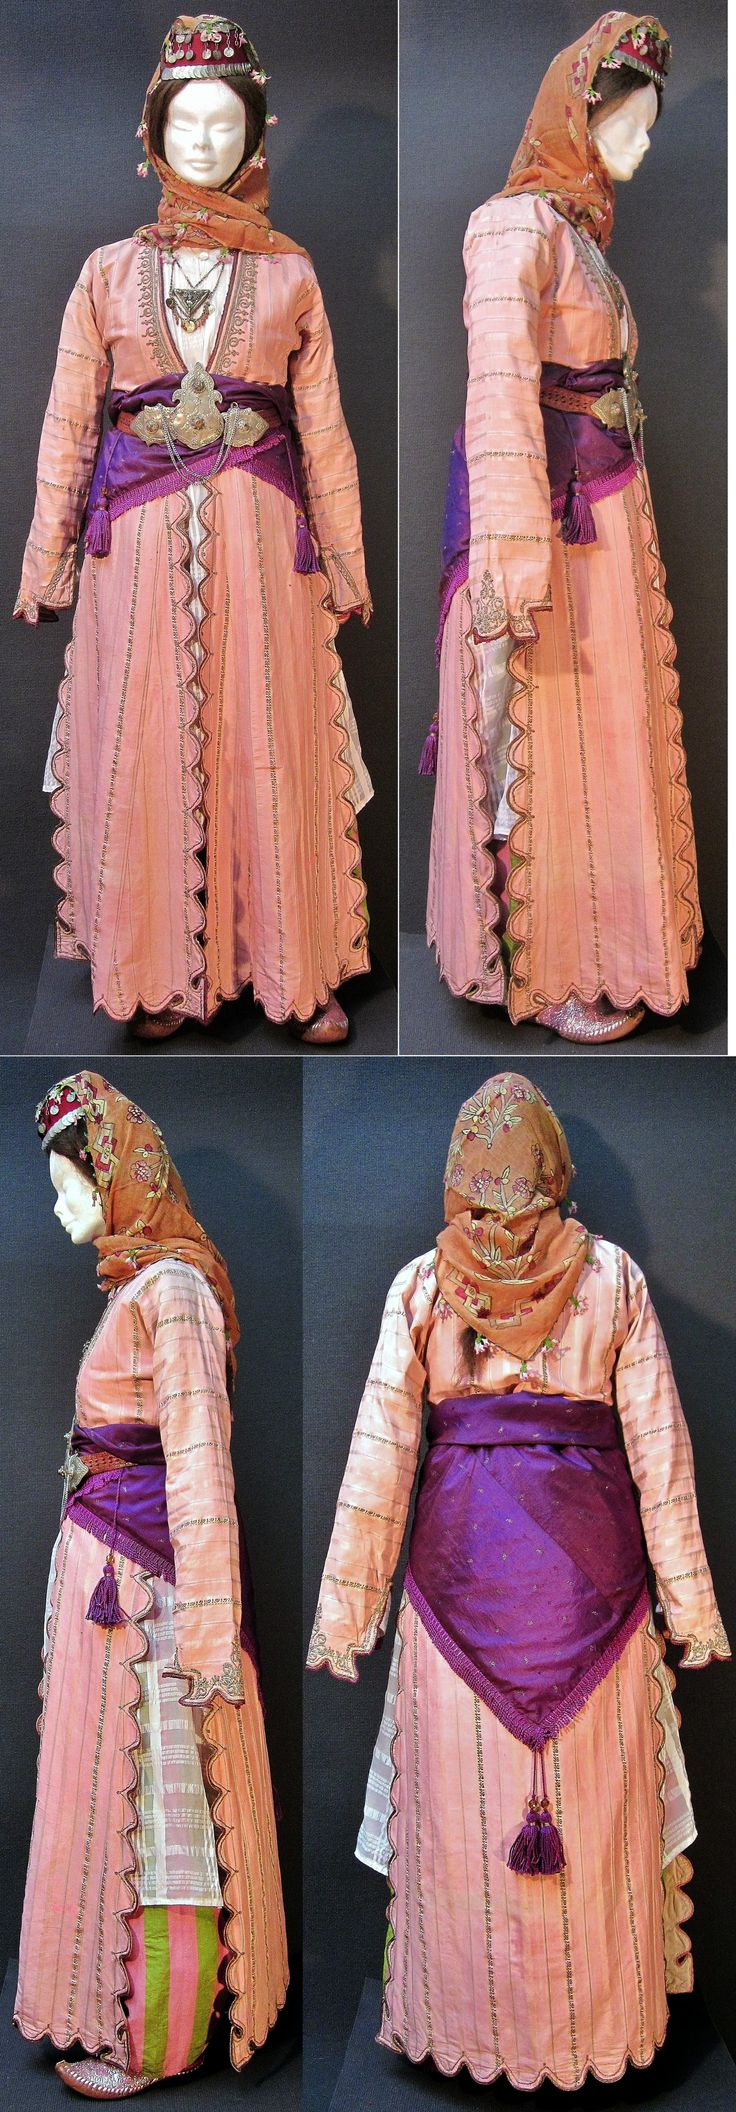 A traditional festive ('summer') costume from the Konya province. Late-Ottoman urban fashion, end of 19th century. With an 'üçetek' (robe with three panels) and an 'arkalık' (triangular waistcloth) in silk discontinuous ('broché') brocade. They date, as well as the jewelry, from 1875-1900, or earlier. (Kavak Costume Collection - Antwerpen/Belgium).